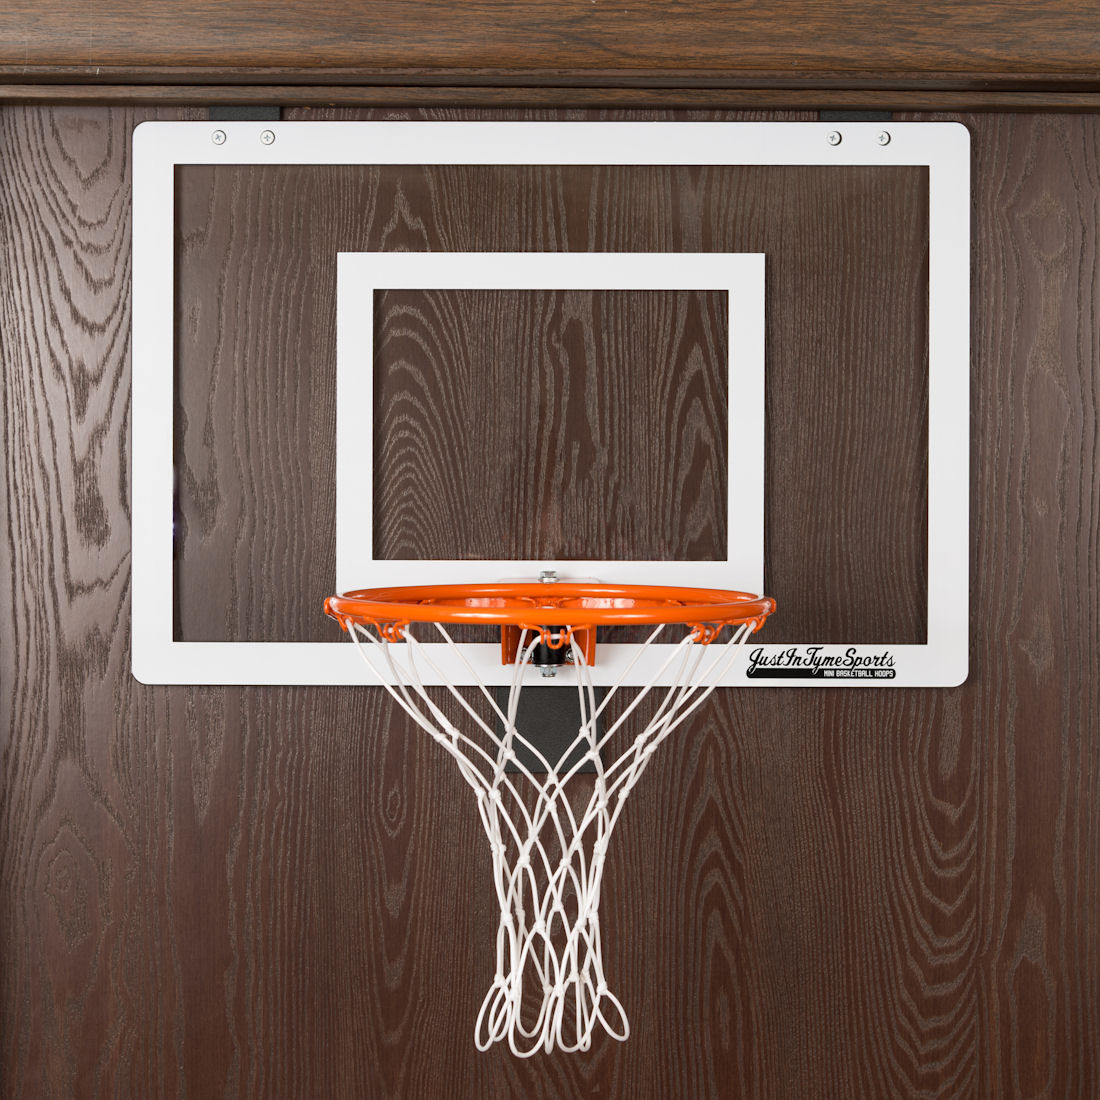 Door Mounted : basketball door - Pezcame.Com